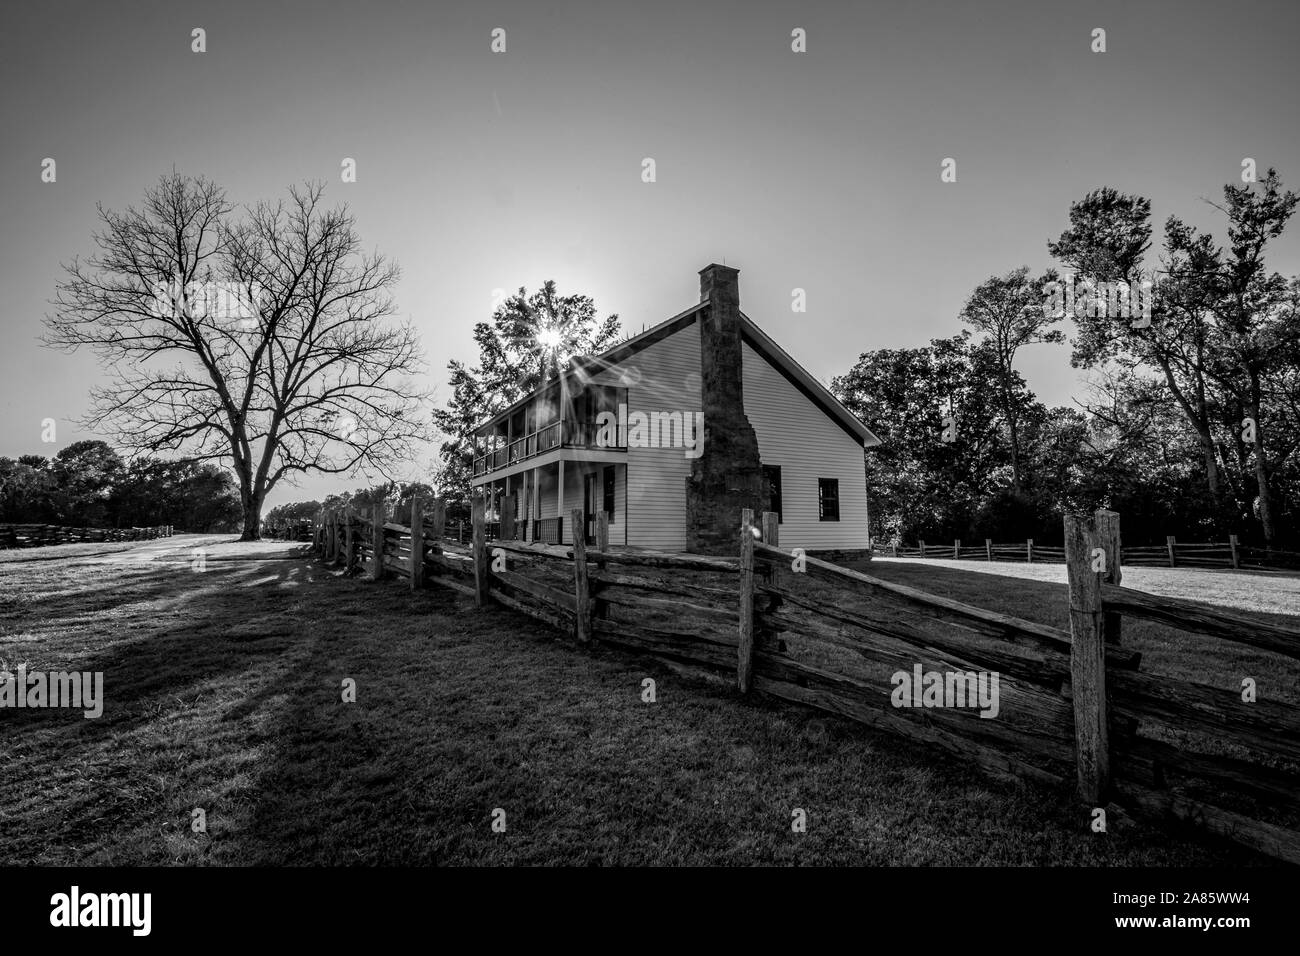 Pea Ridge National Battlefield in Pea Ridge, Arkansas Stock Photo